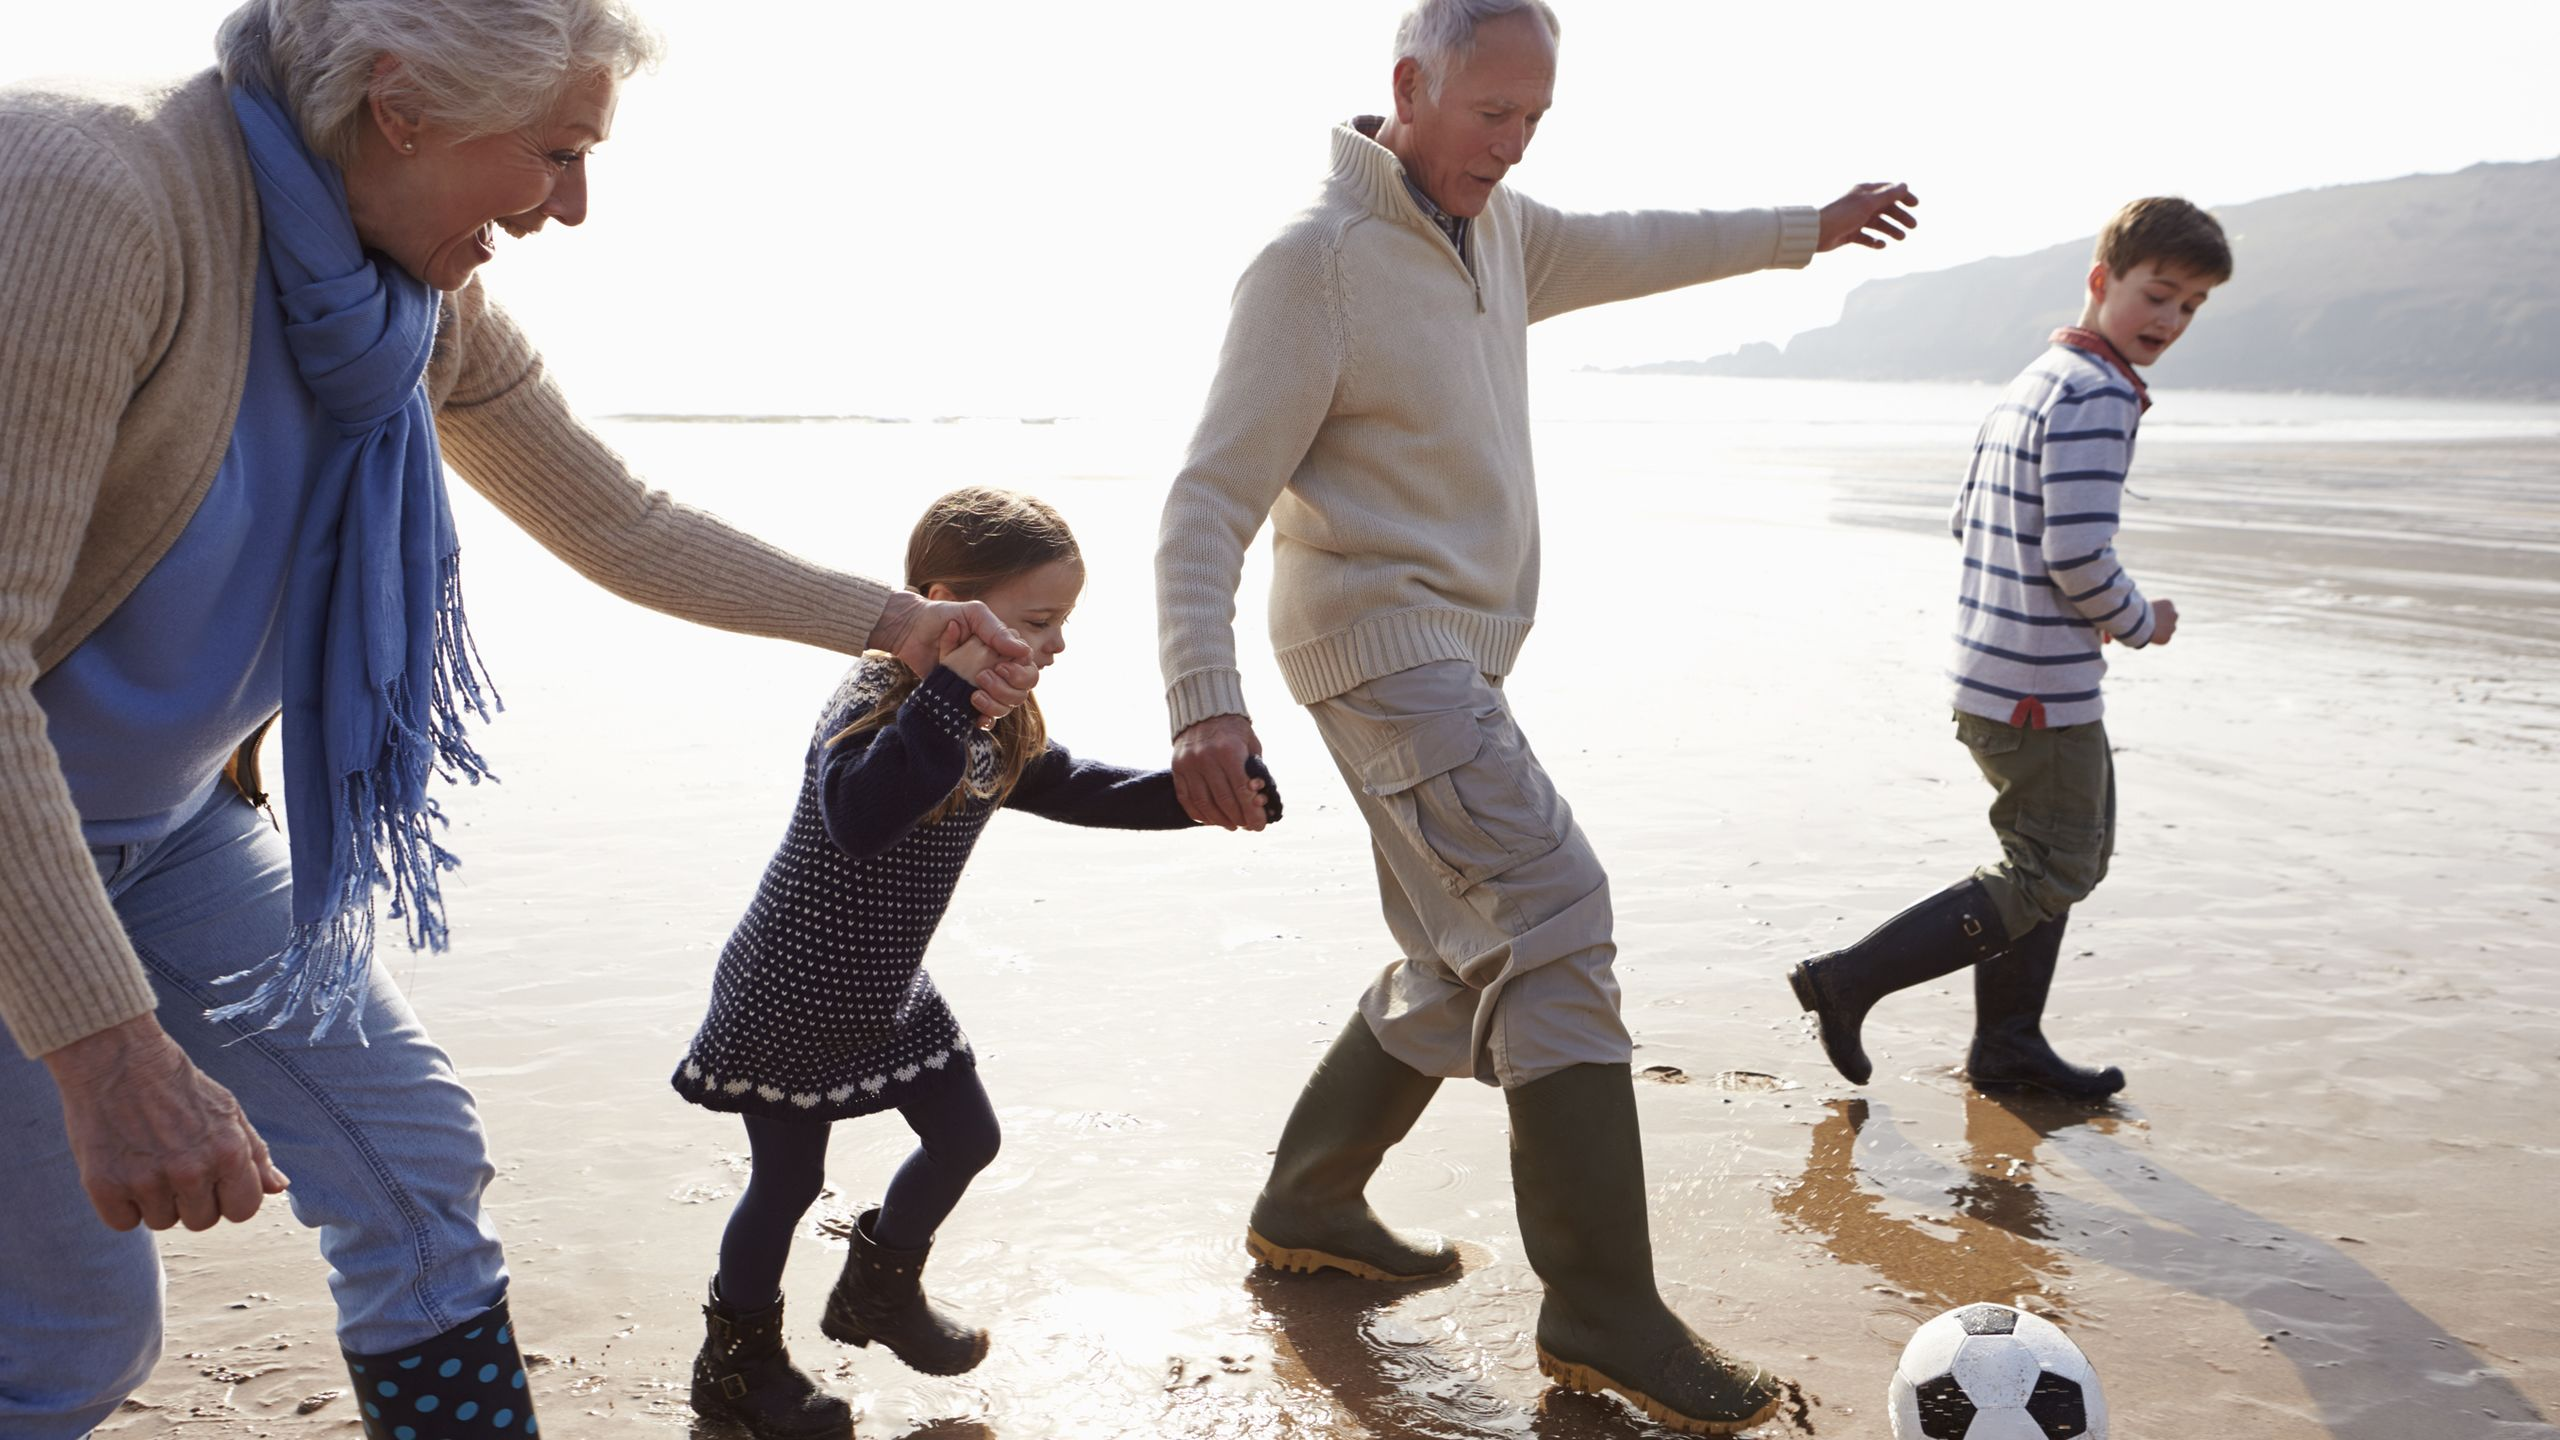 6 Surprising Ways to Live Longer